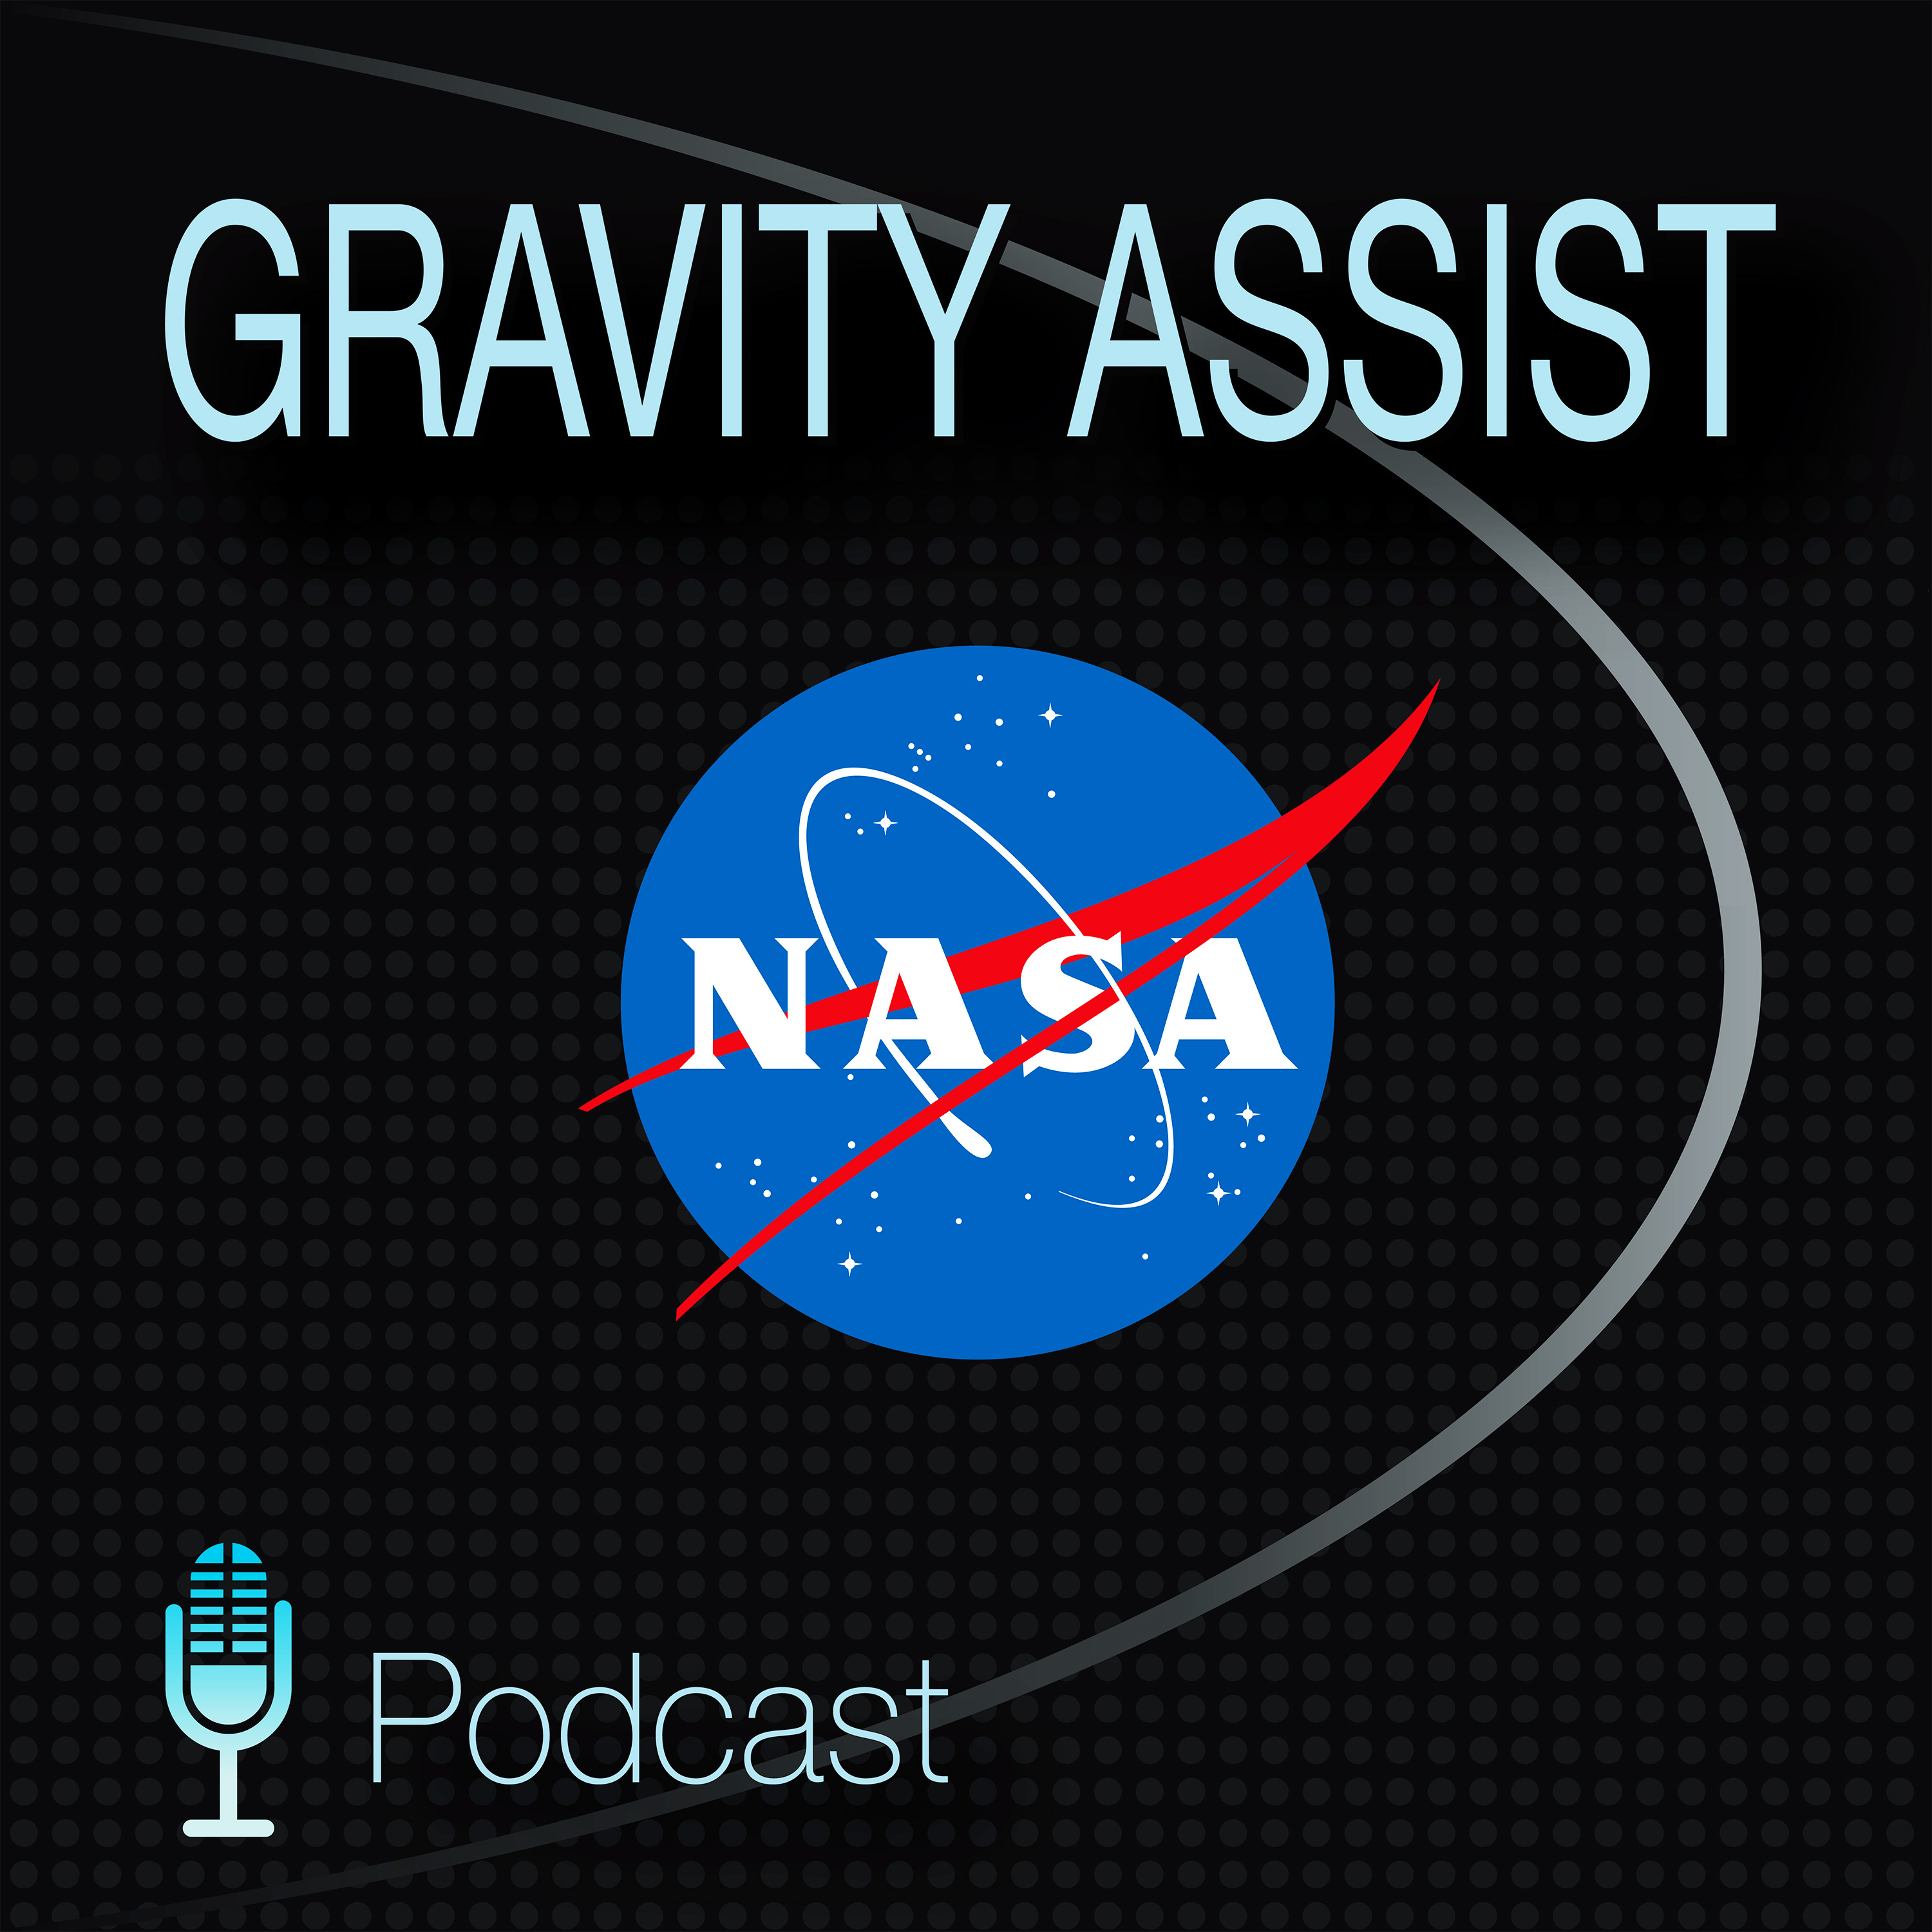 Gravity assist saturn with linda spilker cassini legacy 1997 2017 the sixth planet from the sun saturn is a gas giant thats best known for its striking icy rings how old are the rings and how are they changing over fandeluxe Choice Image